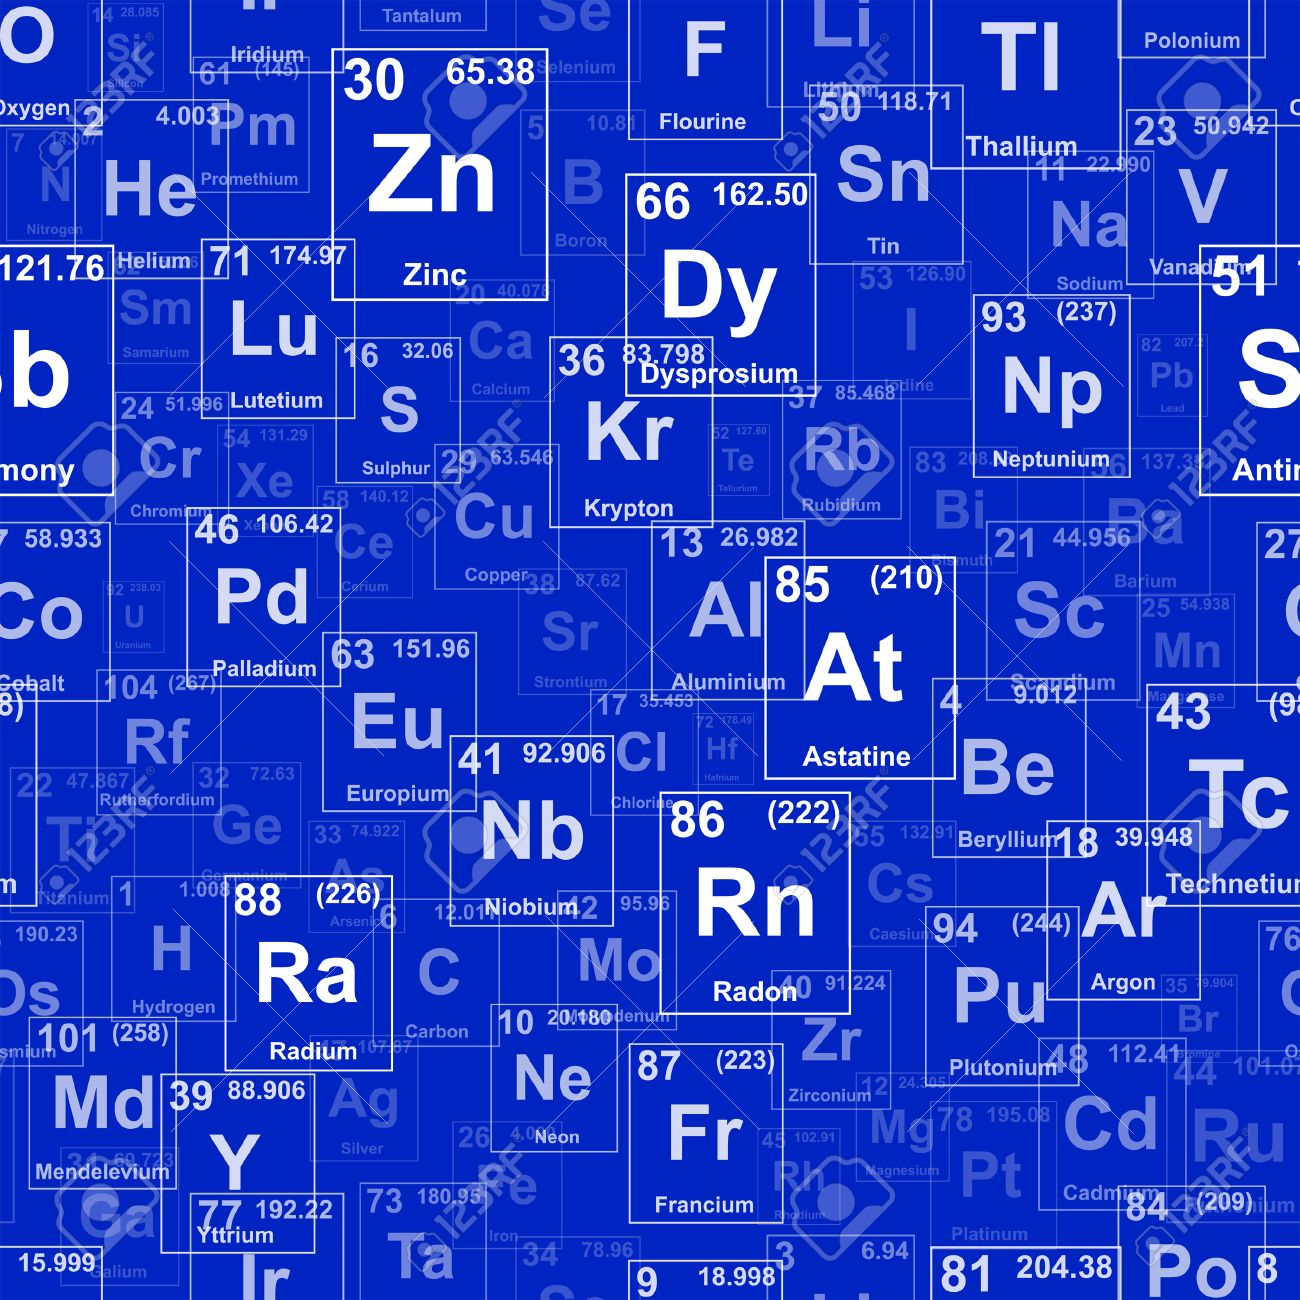 Uuu element periodic table choice image periodic table images uuu element periodic table images periodic table images uuu element periodic table gallery periodic table images gamestrikefo Image collections